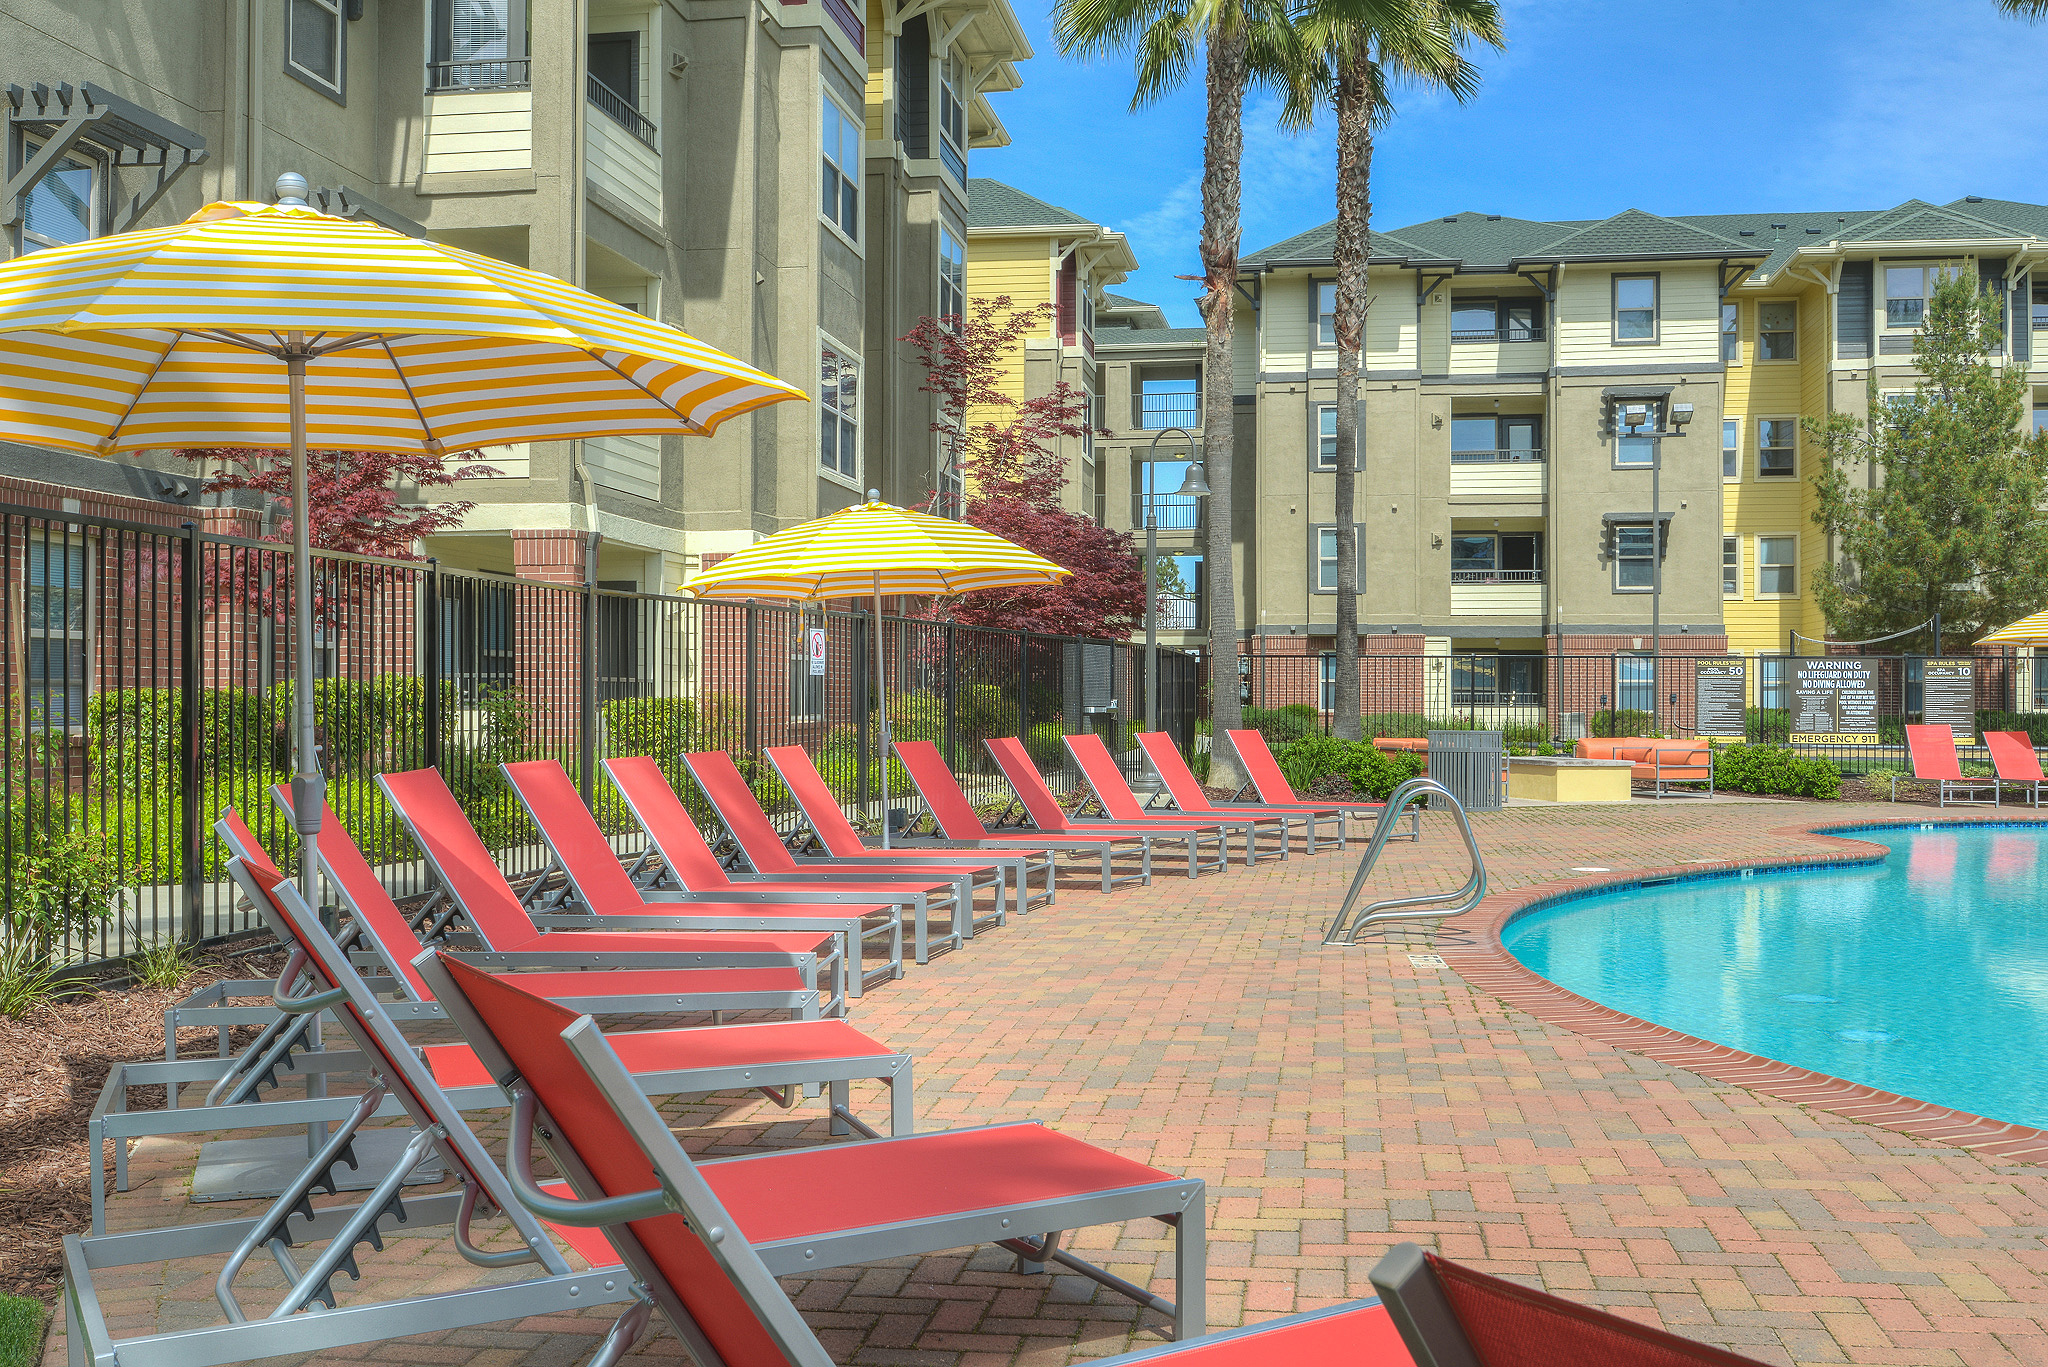 Exterior of pool with brick pool deck rimmed with lounge chairs with 4-story apartment buildings in background